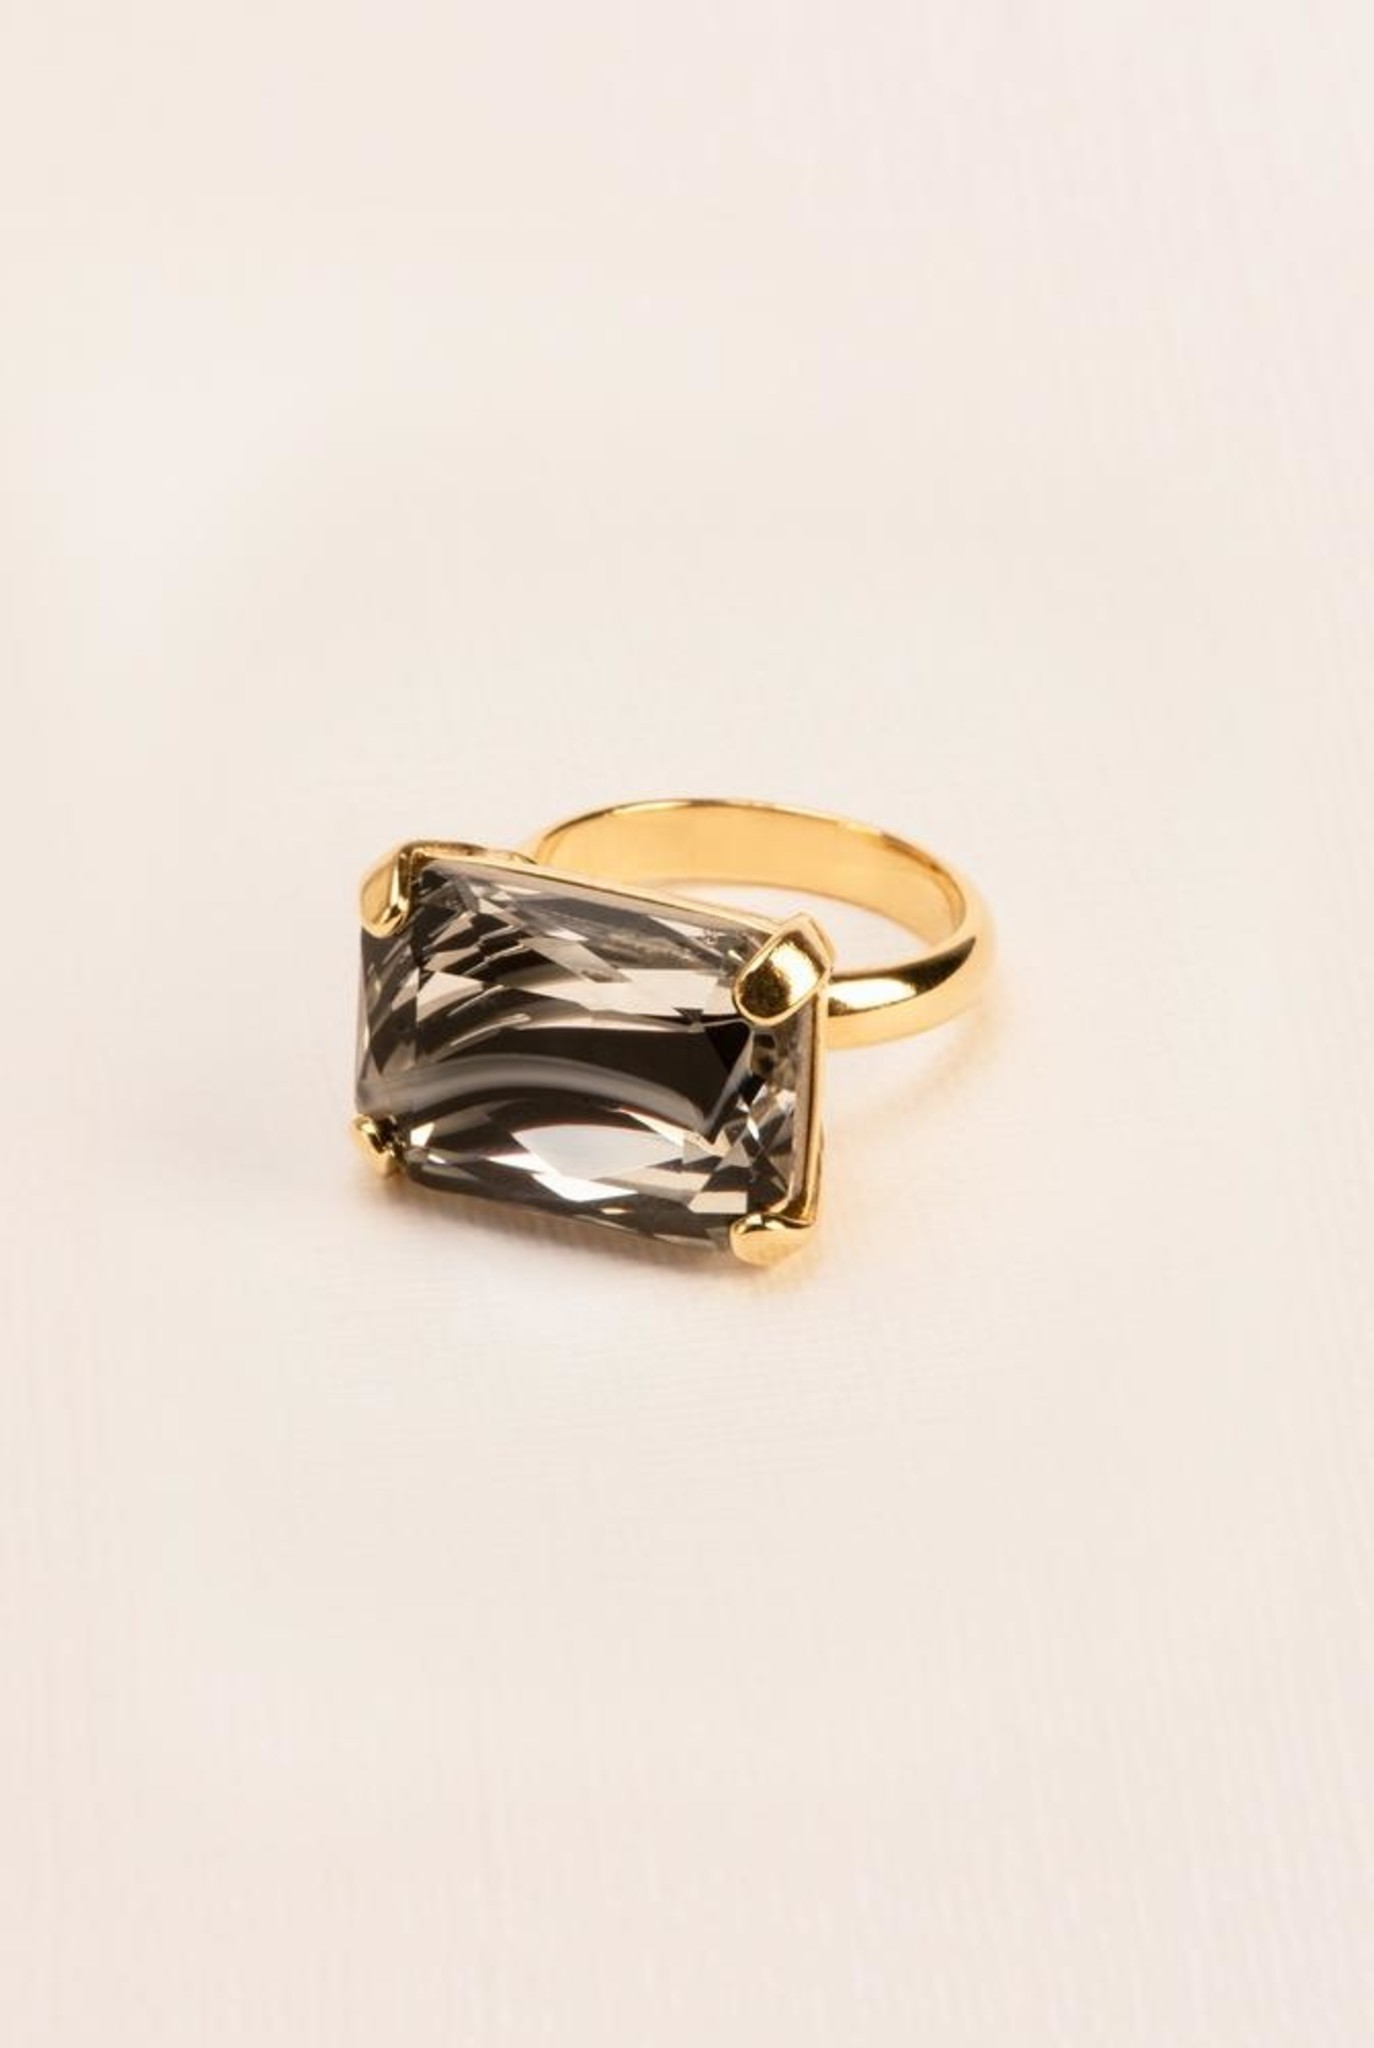 Ring with marbled crystal gold plated